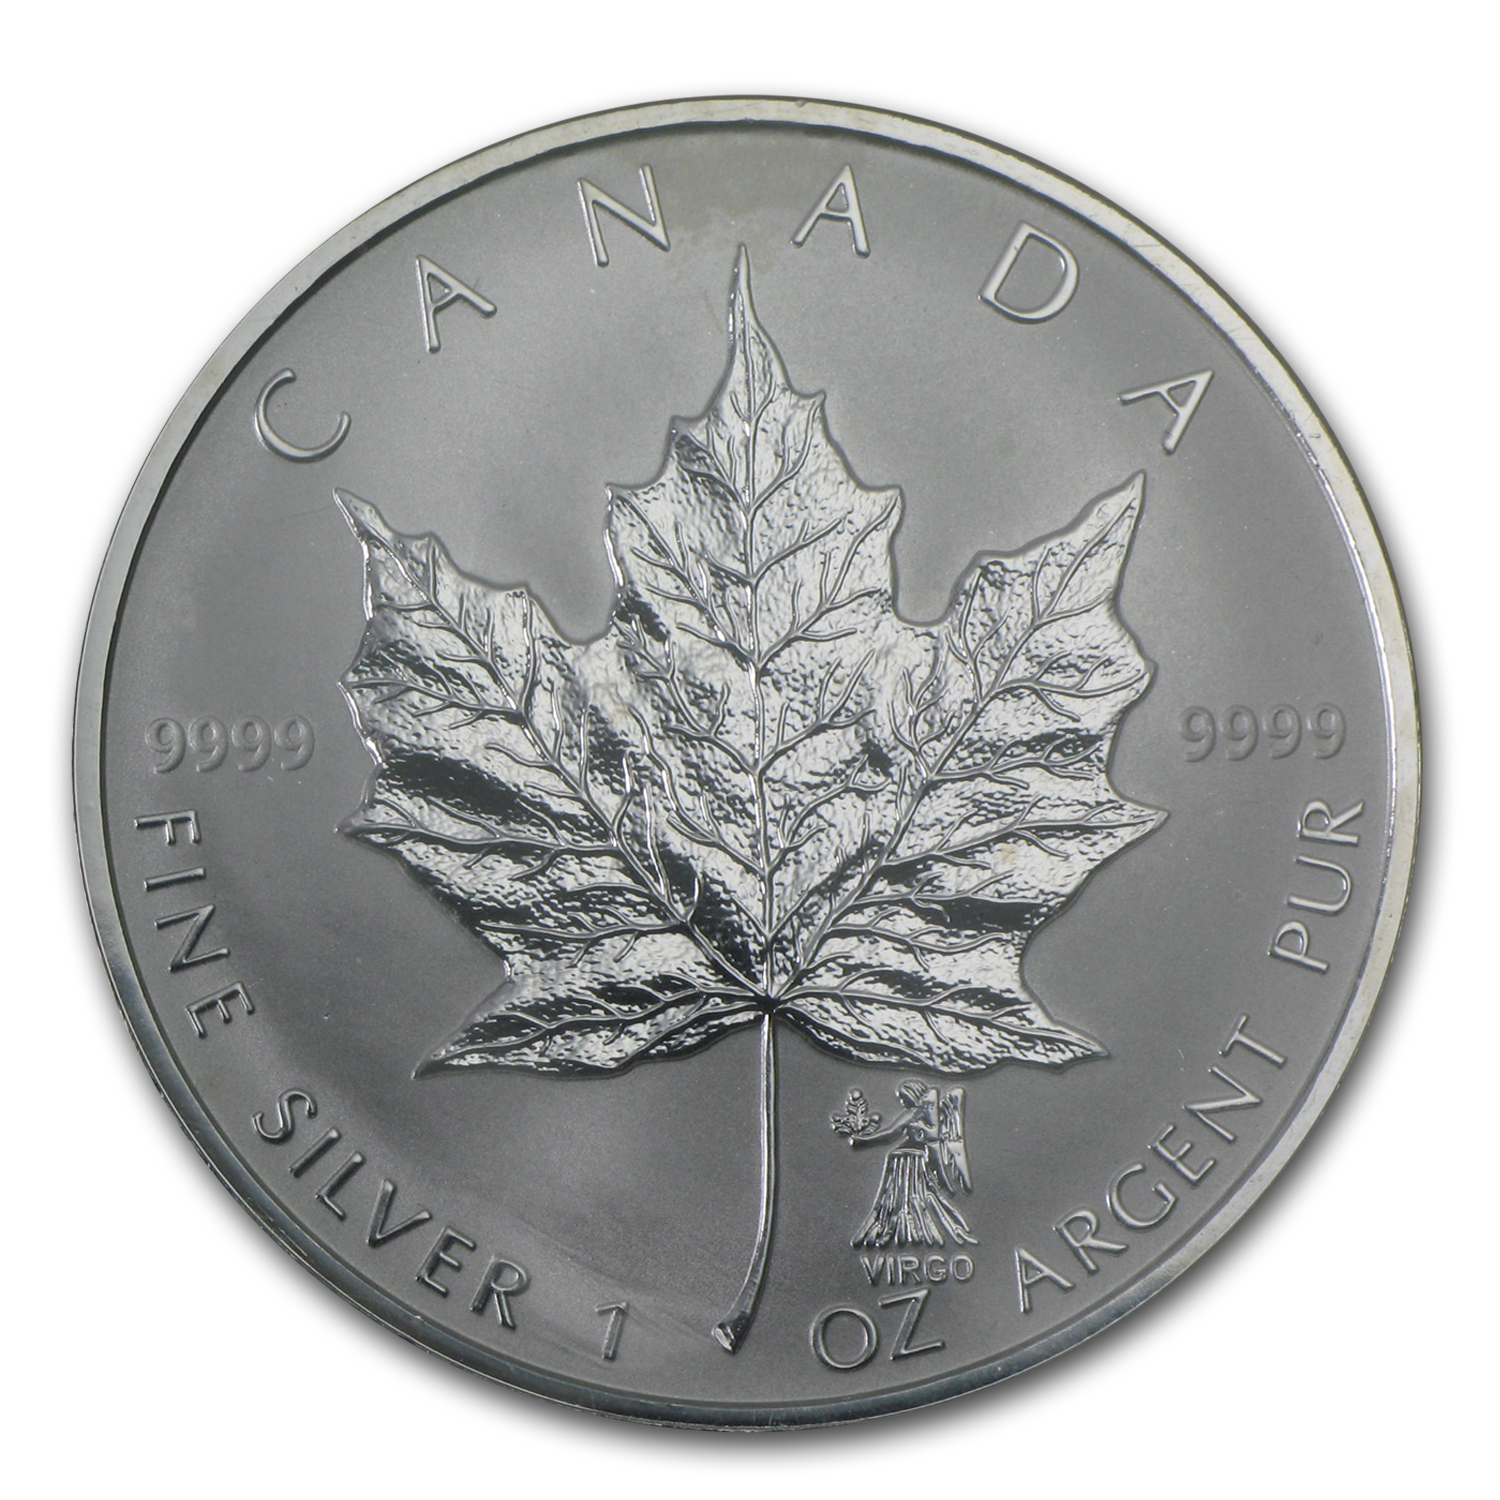 2004 1 oz Silver Canadian Maple Leaf - Virgo Zodiac Privy